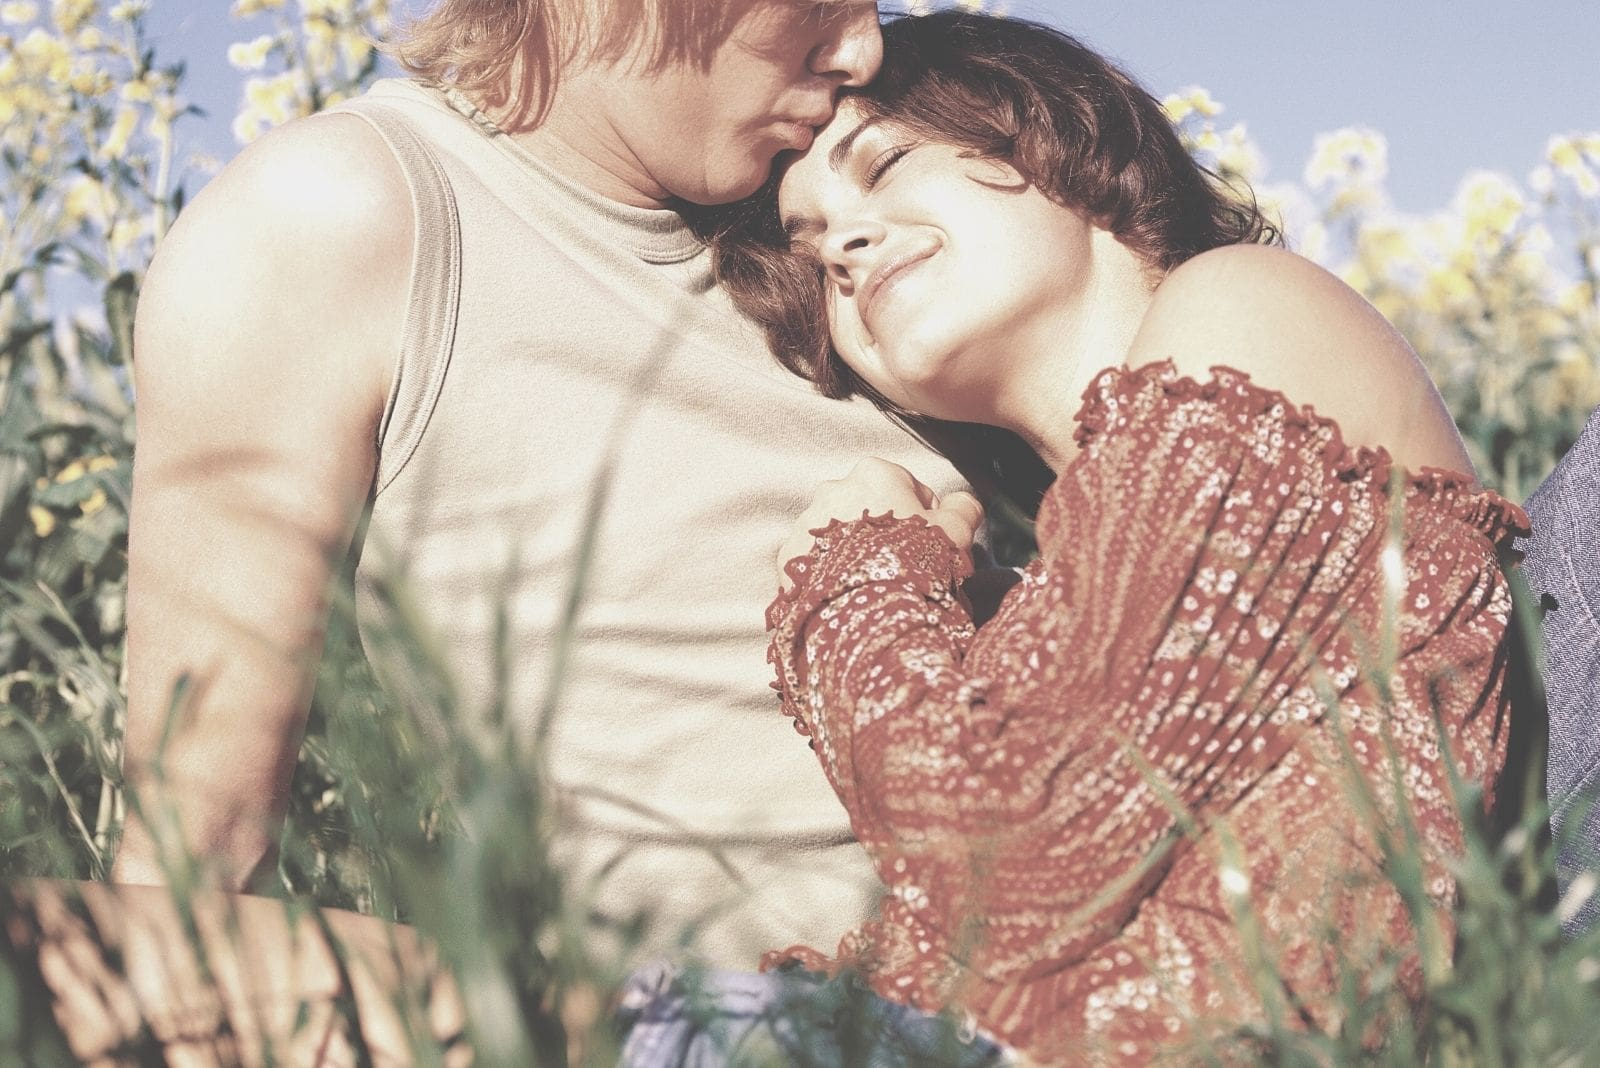 young couple sitting in field of flowers with woman lying in the man's chest while kissing her in the forehead